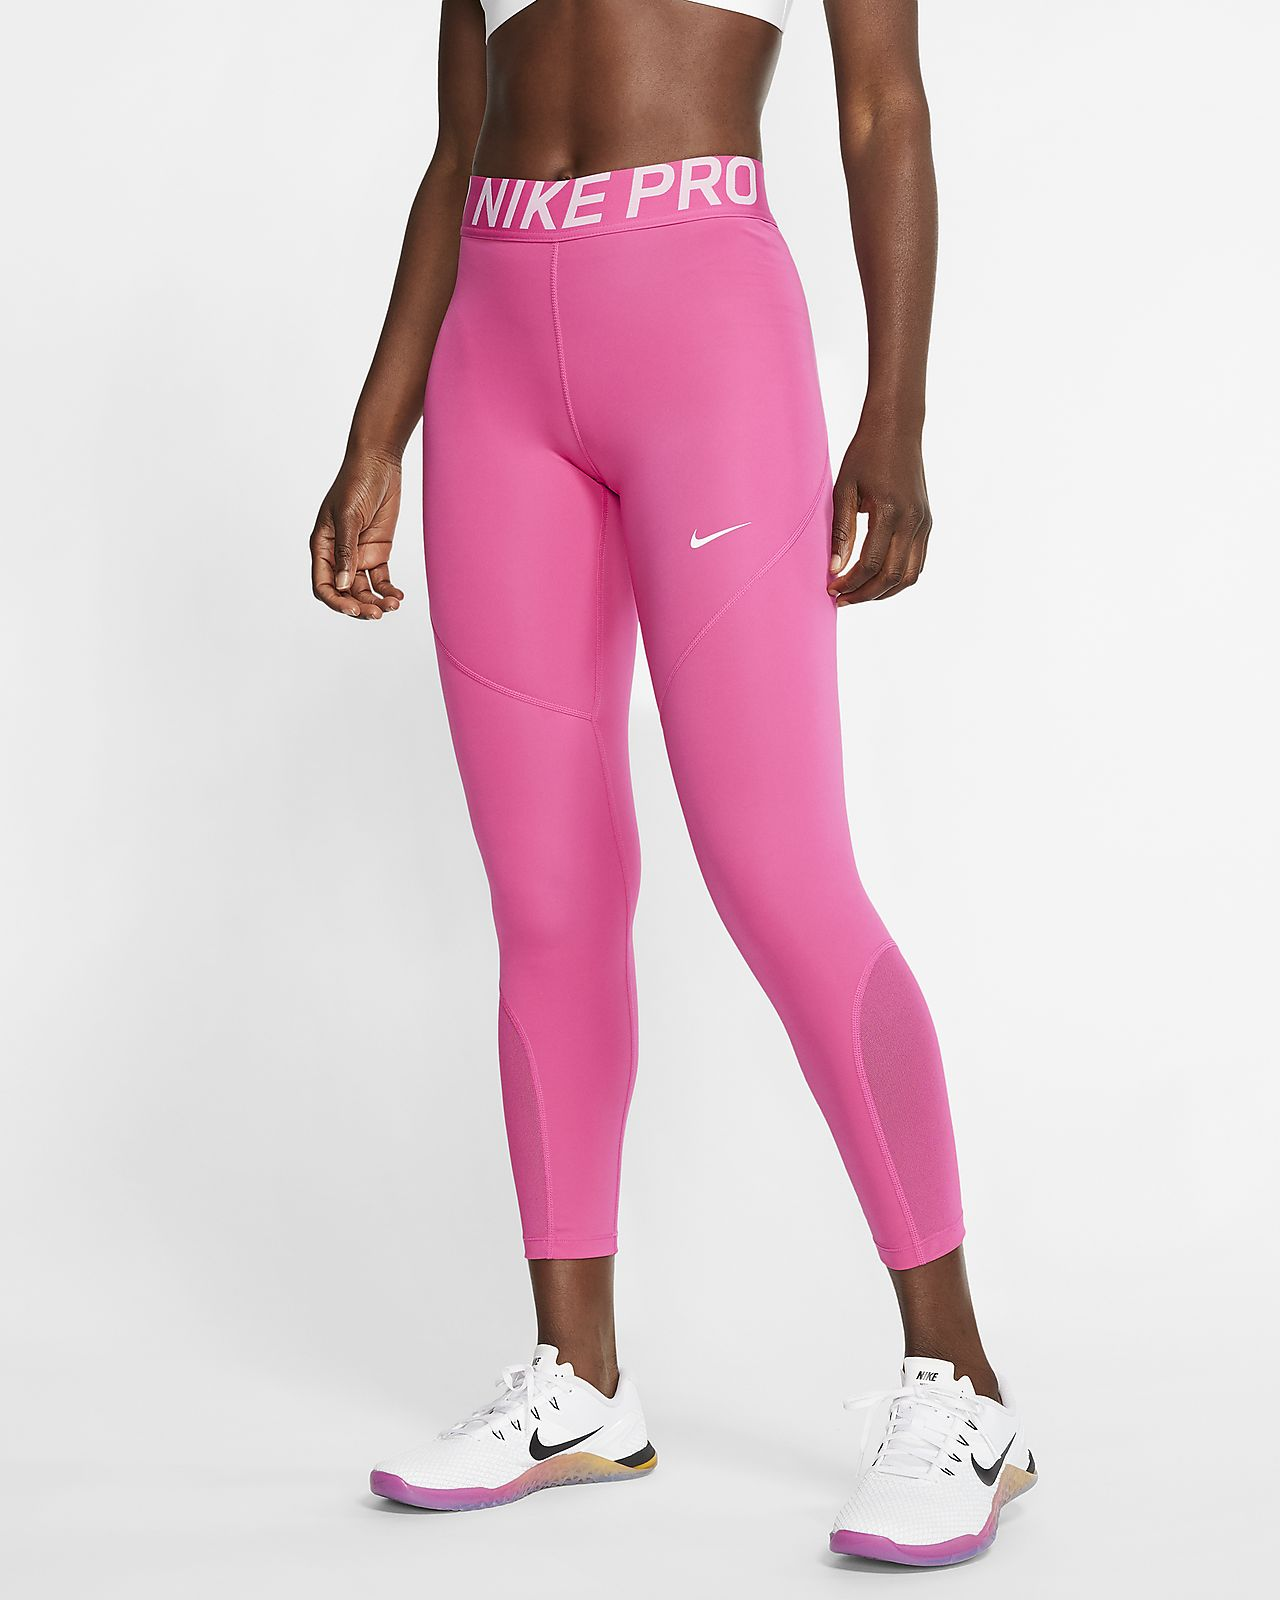 latest fashion online for sale best deals on Nike Pro Women's 7/8 Tights